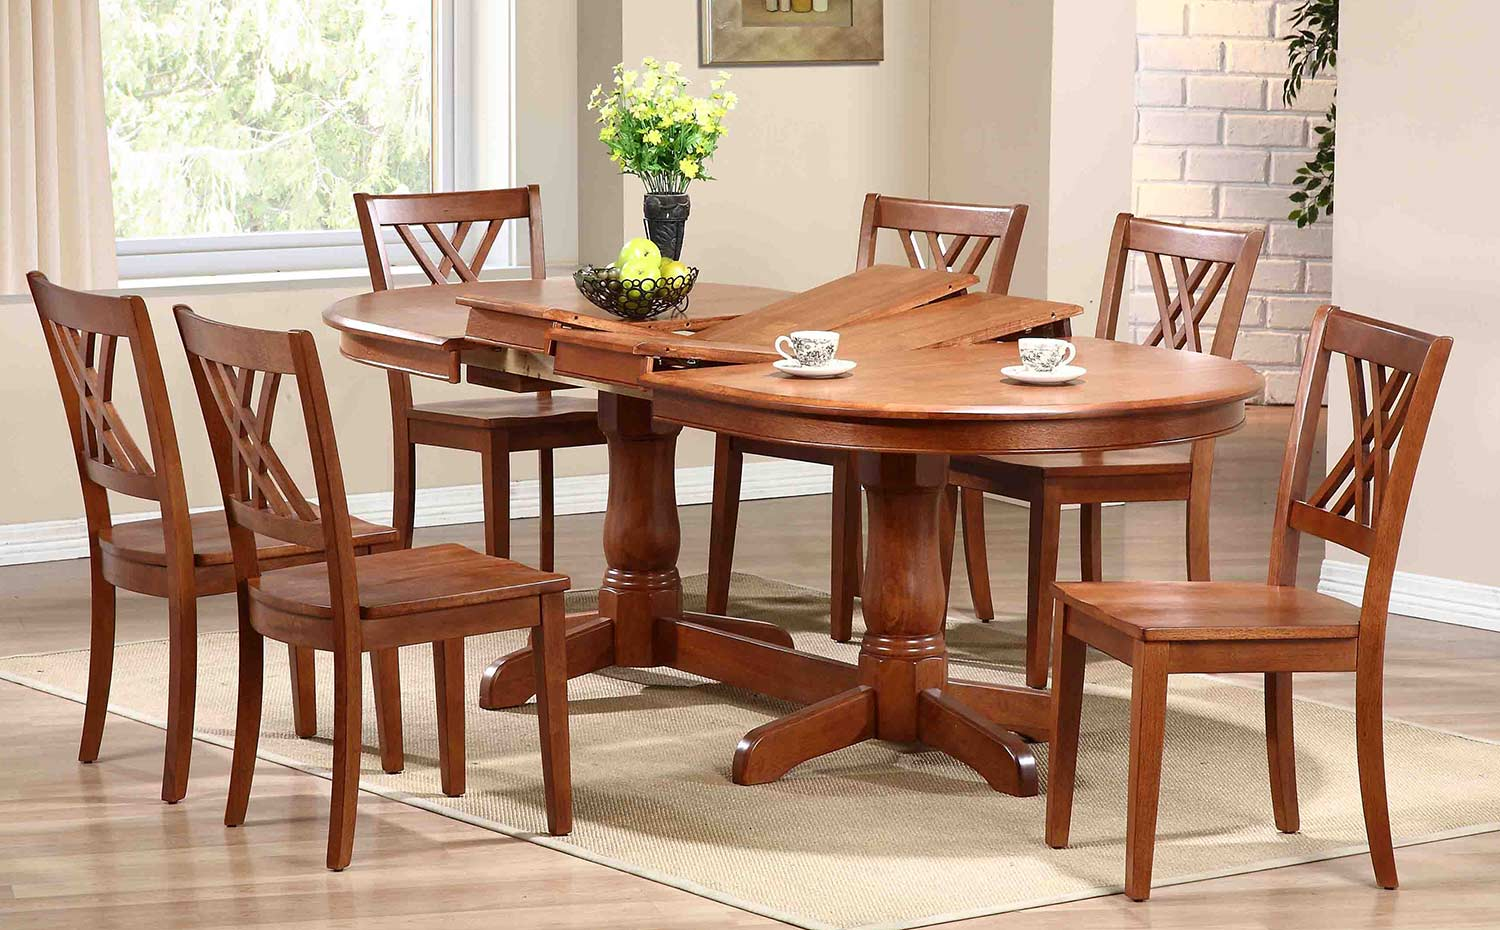 Iconic Furniture Oval Double Pedestal Dining Set with Double X-Back Dining Chair - Cinnamon/Cinnamon